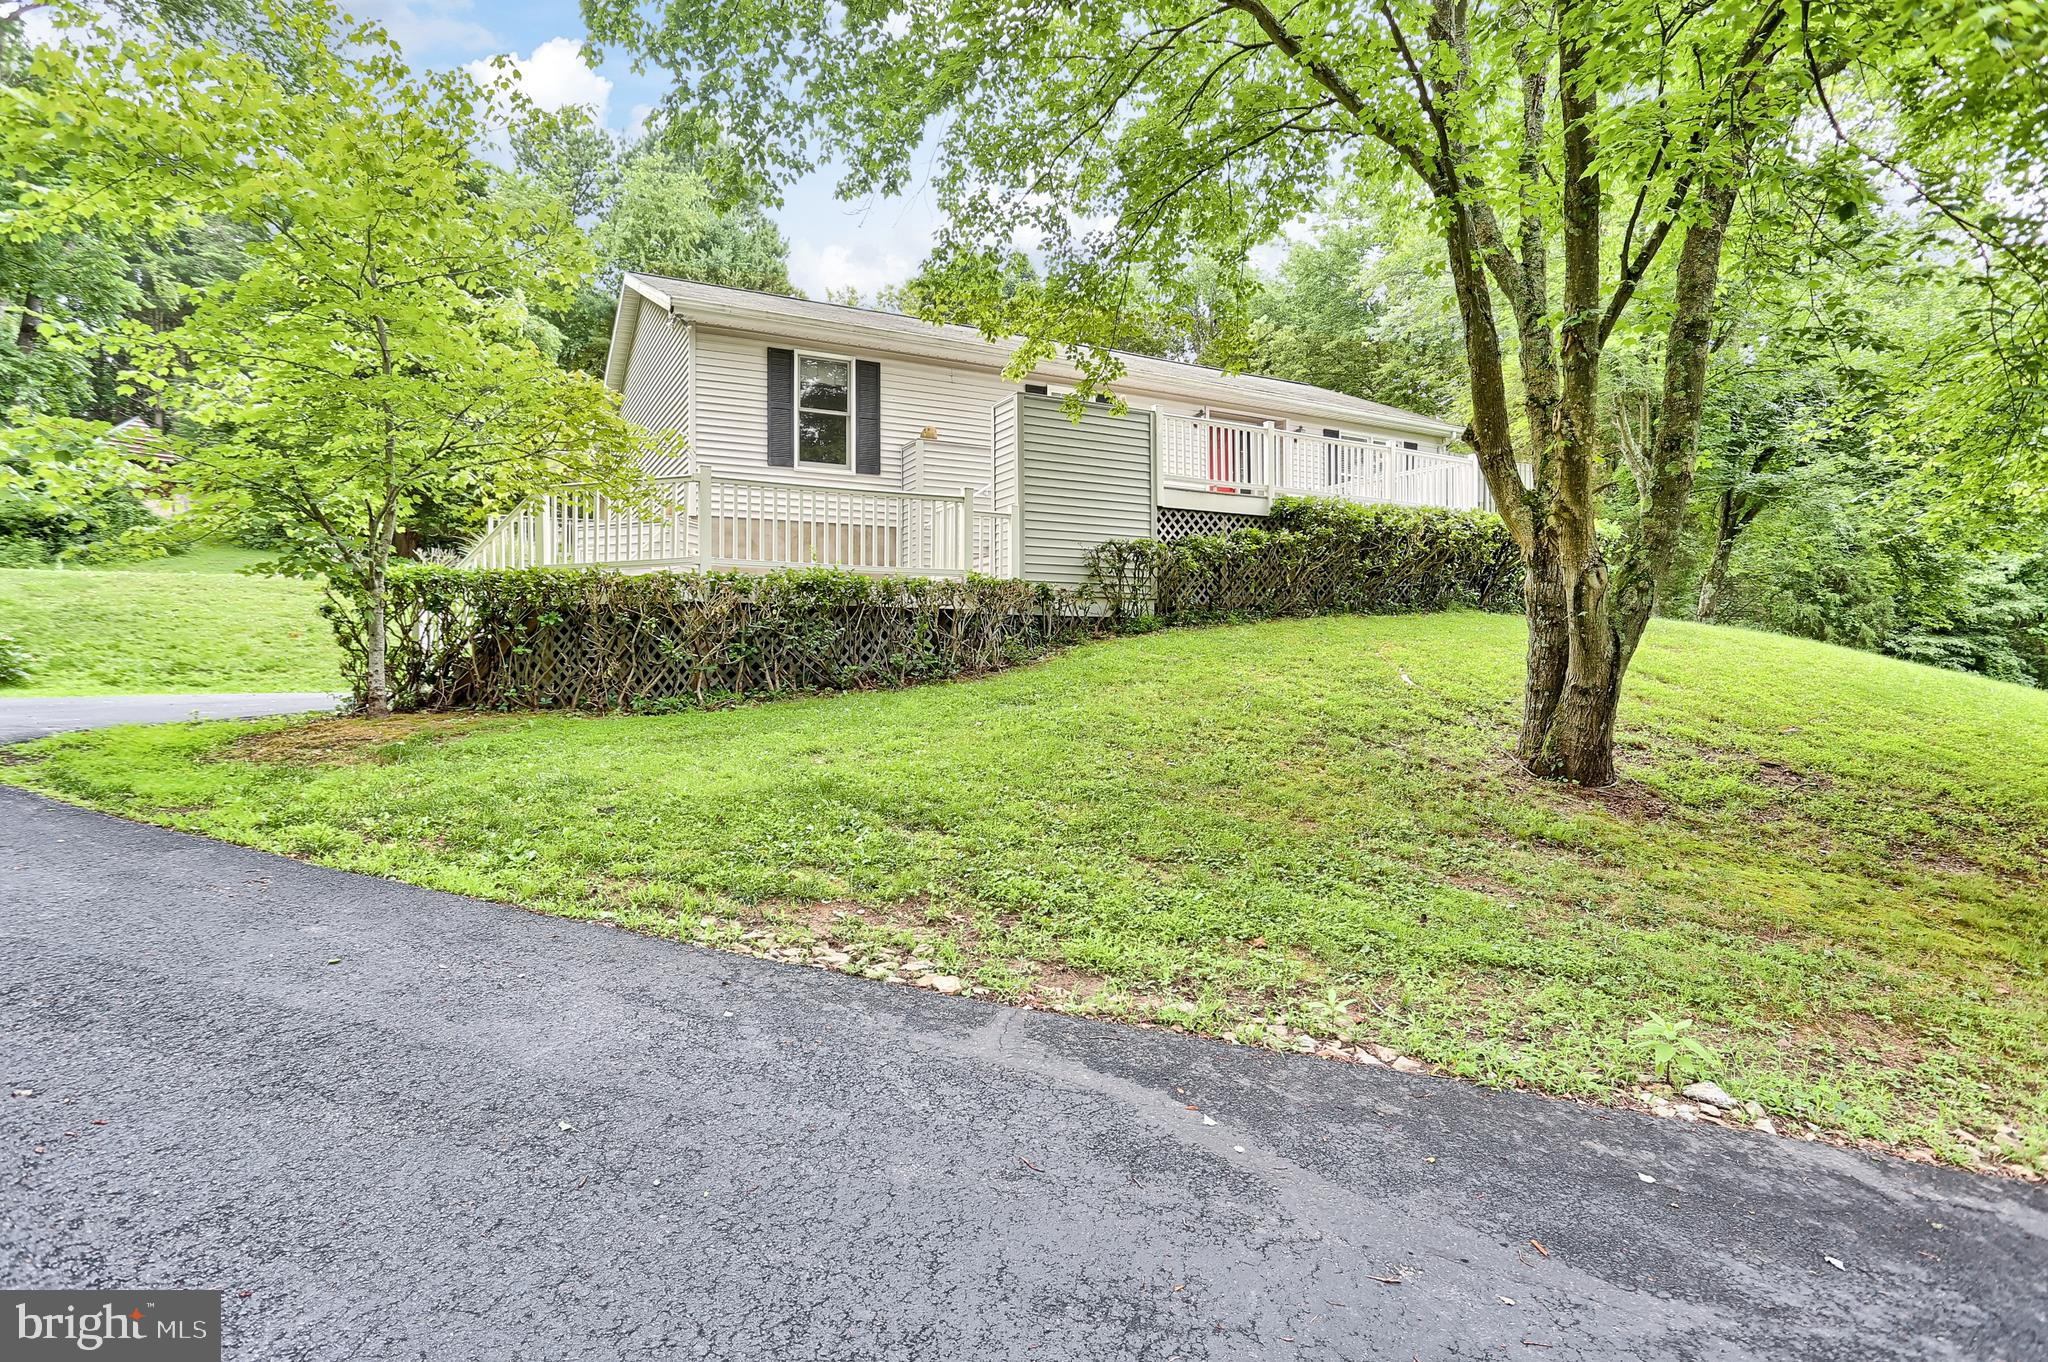 7320 WOODBINE ROAD, AIRVILLE, PA 17302